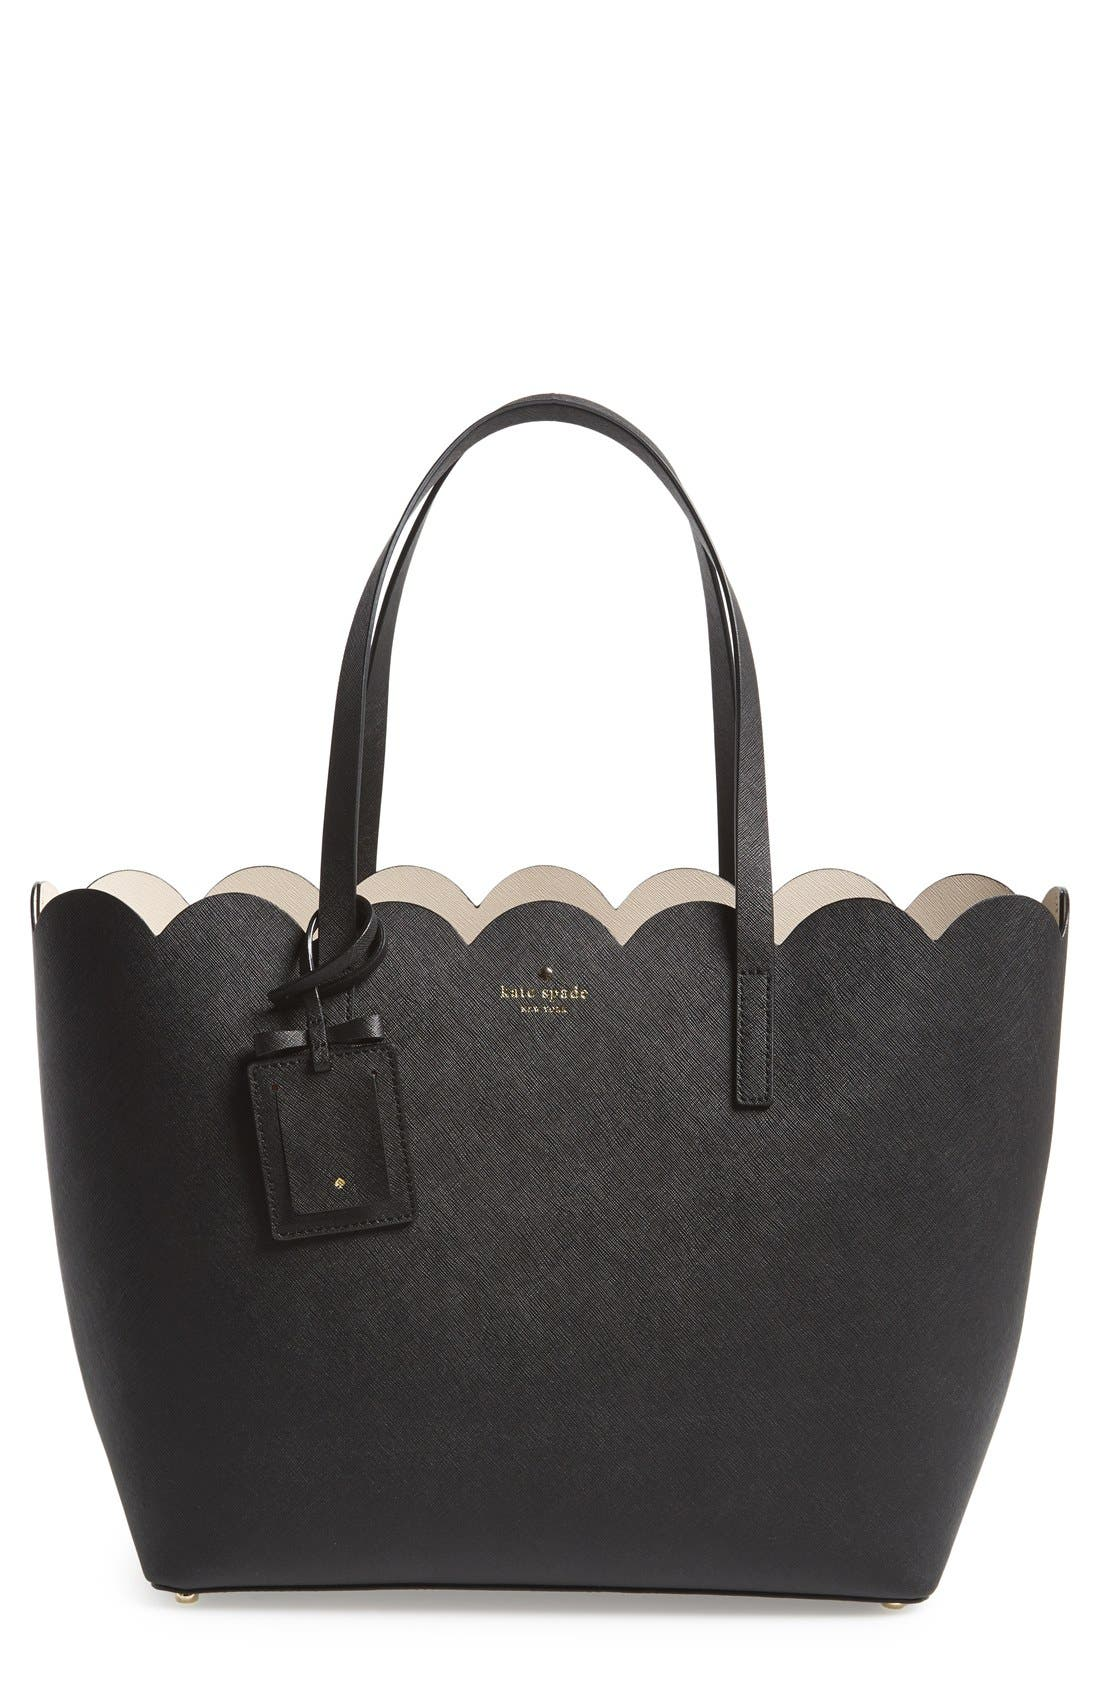 KATE SPADE NEW YORK,                             'lily avenue - carrigan' leather tote,                             Main thumbnail 1, color,                             019